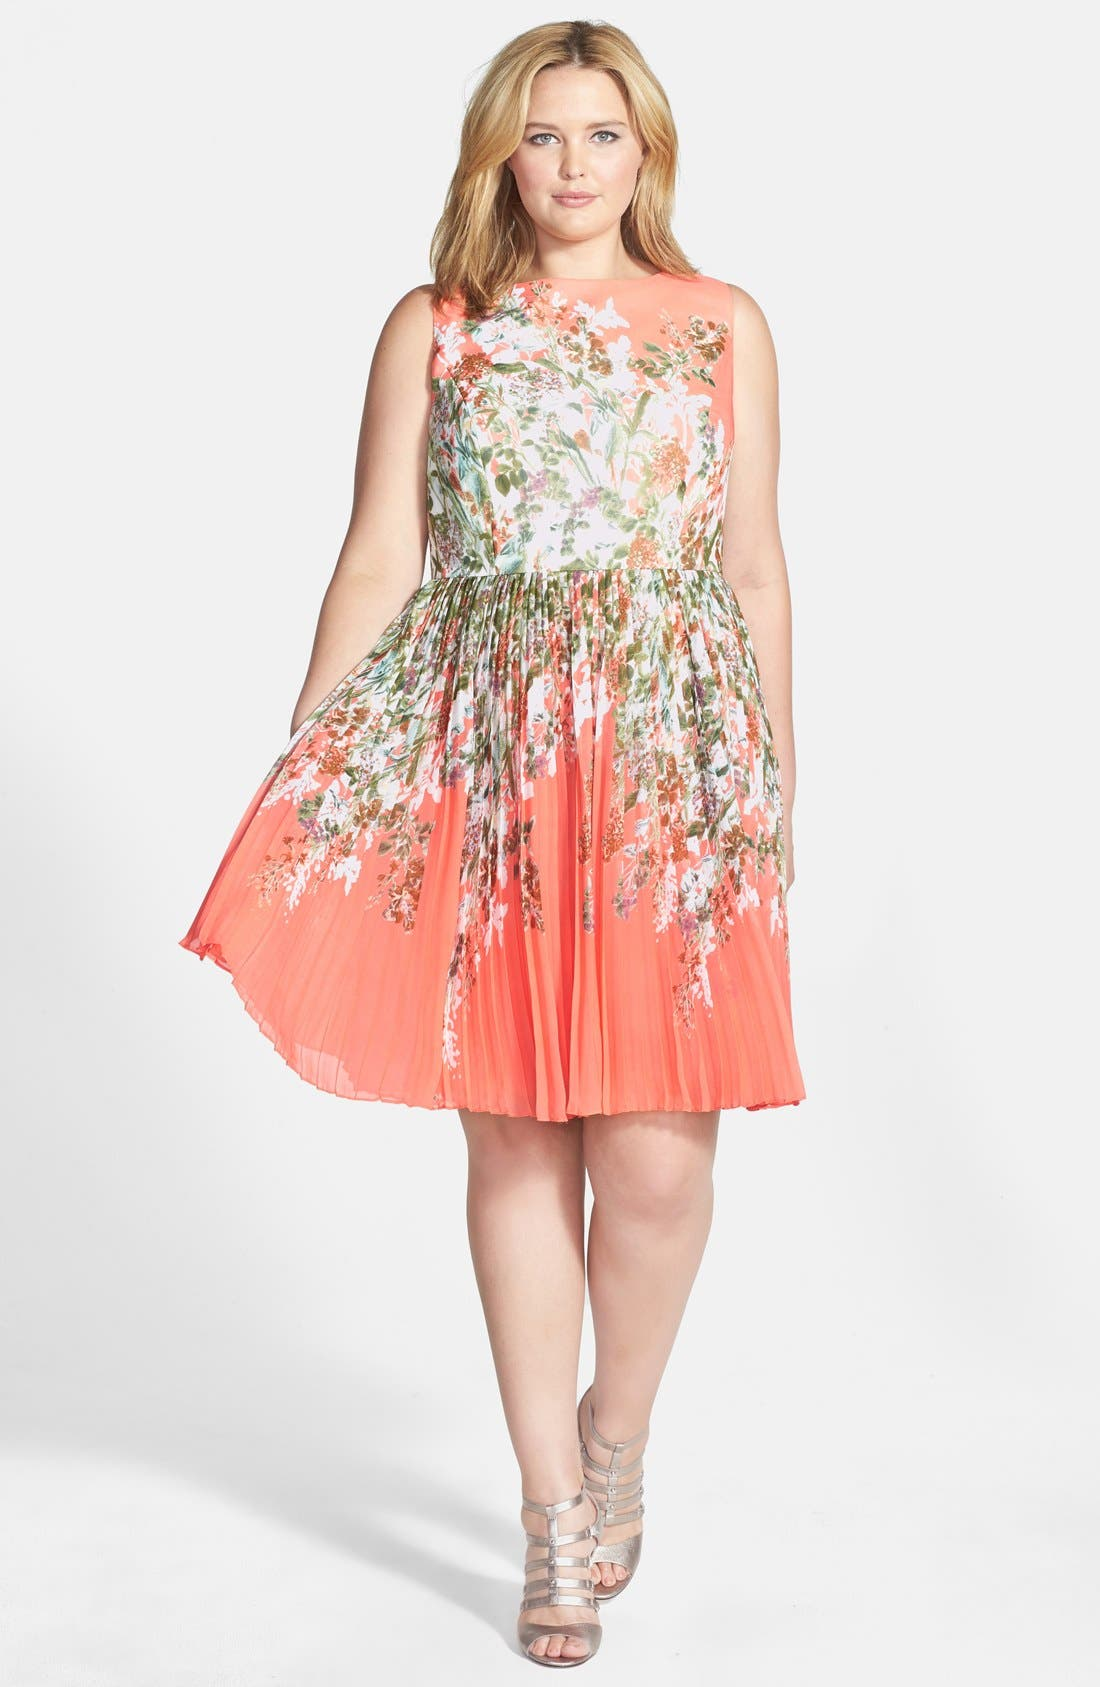 Alternate Image 1 Selected - Adrianna Papell Floral Print Pleat Chiffon Fit & Flare Dress (Plus Size)